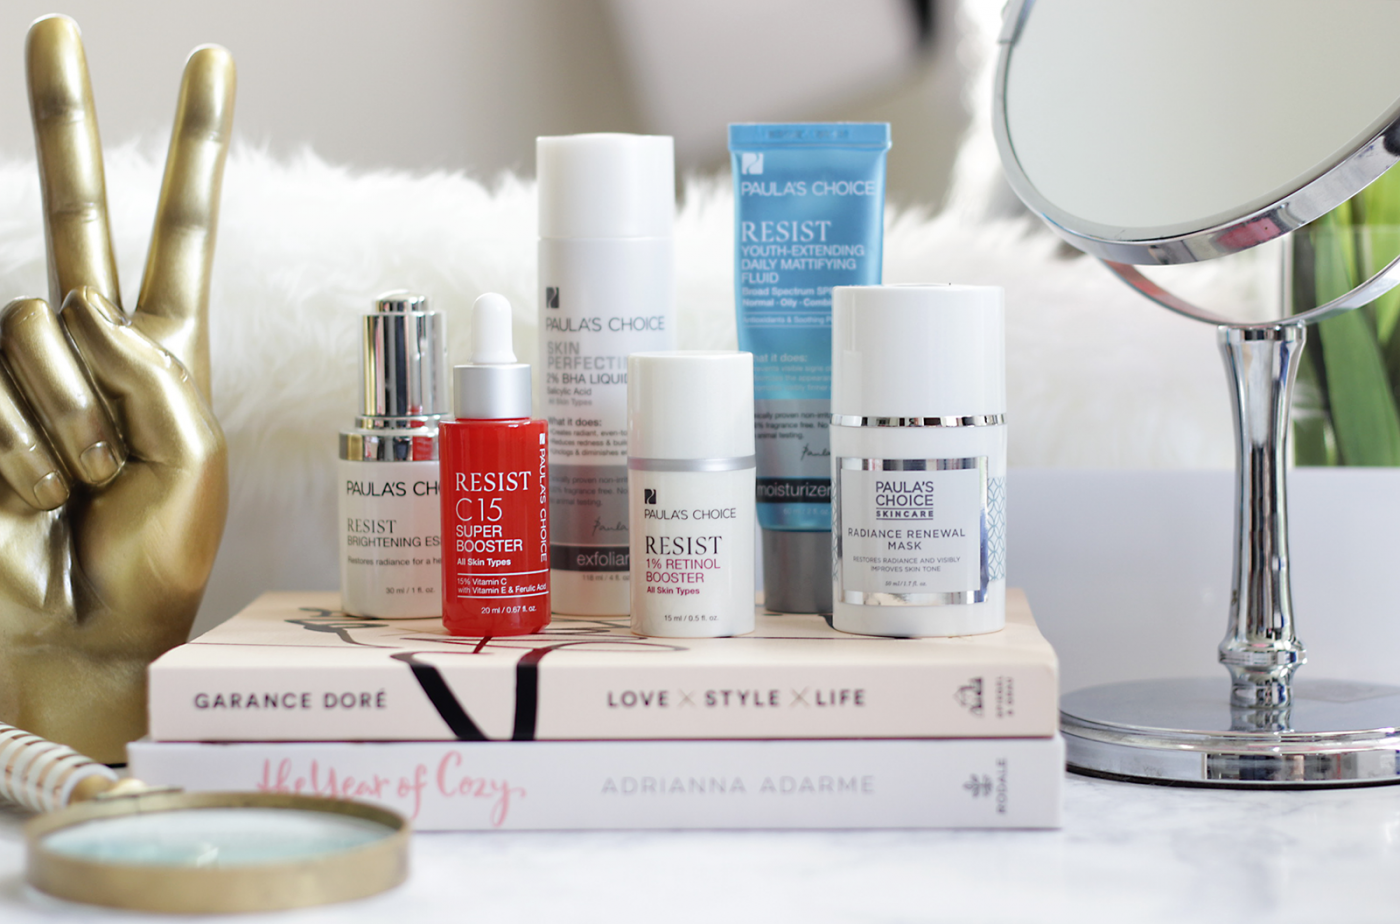 Ever since I hit my 30's my skin has been a downhill spiral of being less than radiant. Today we are chatting all ways to achieve brighter, radiant skin. Here are 5 easy tips to radiant skin. #PRIMPlovesPC